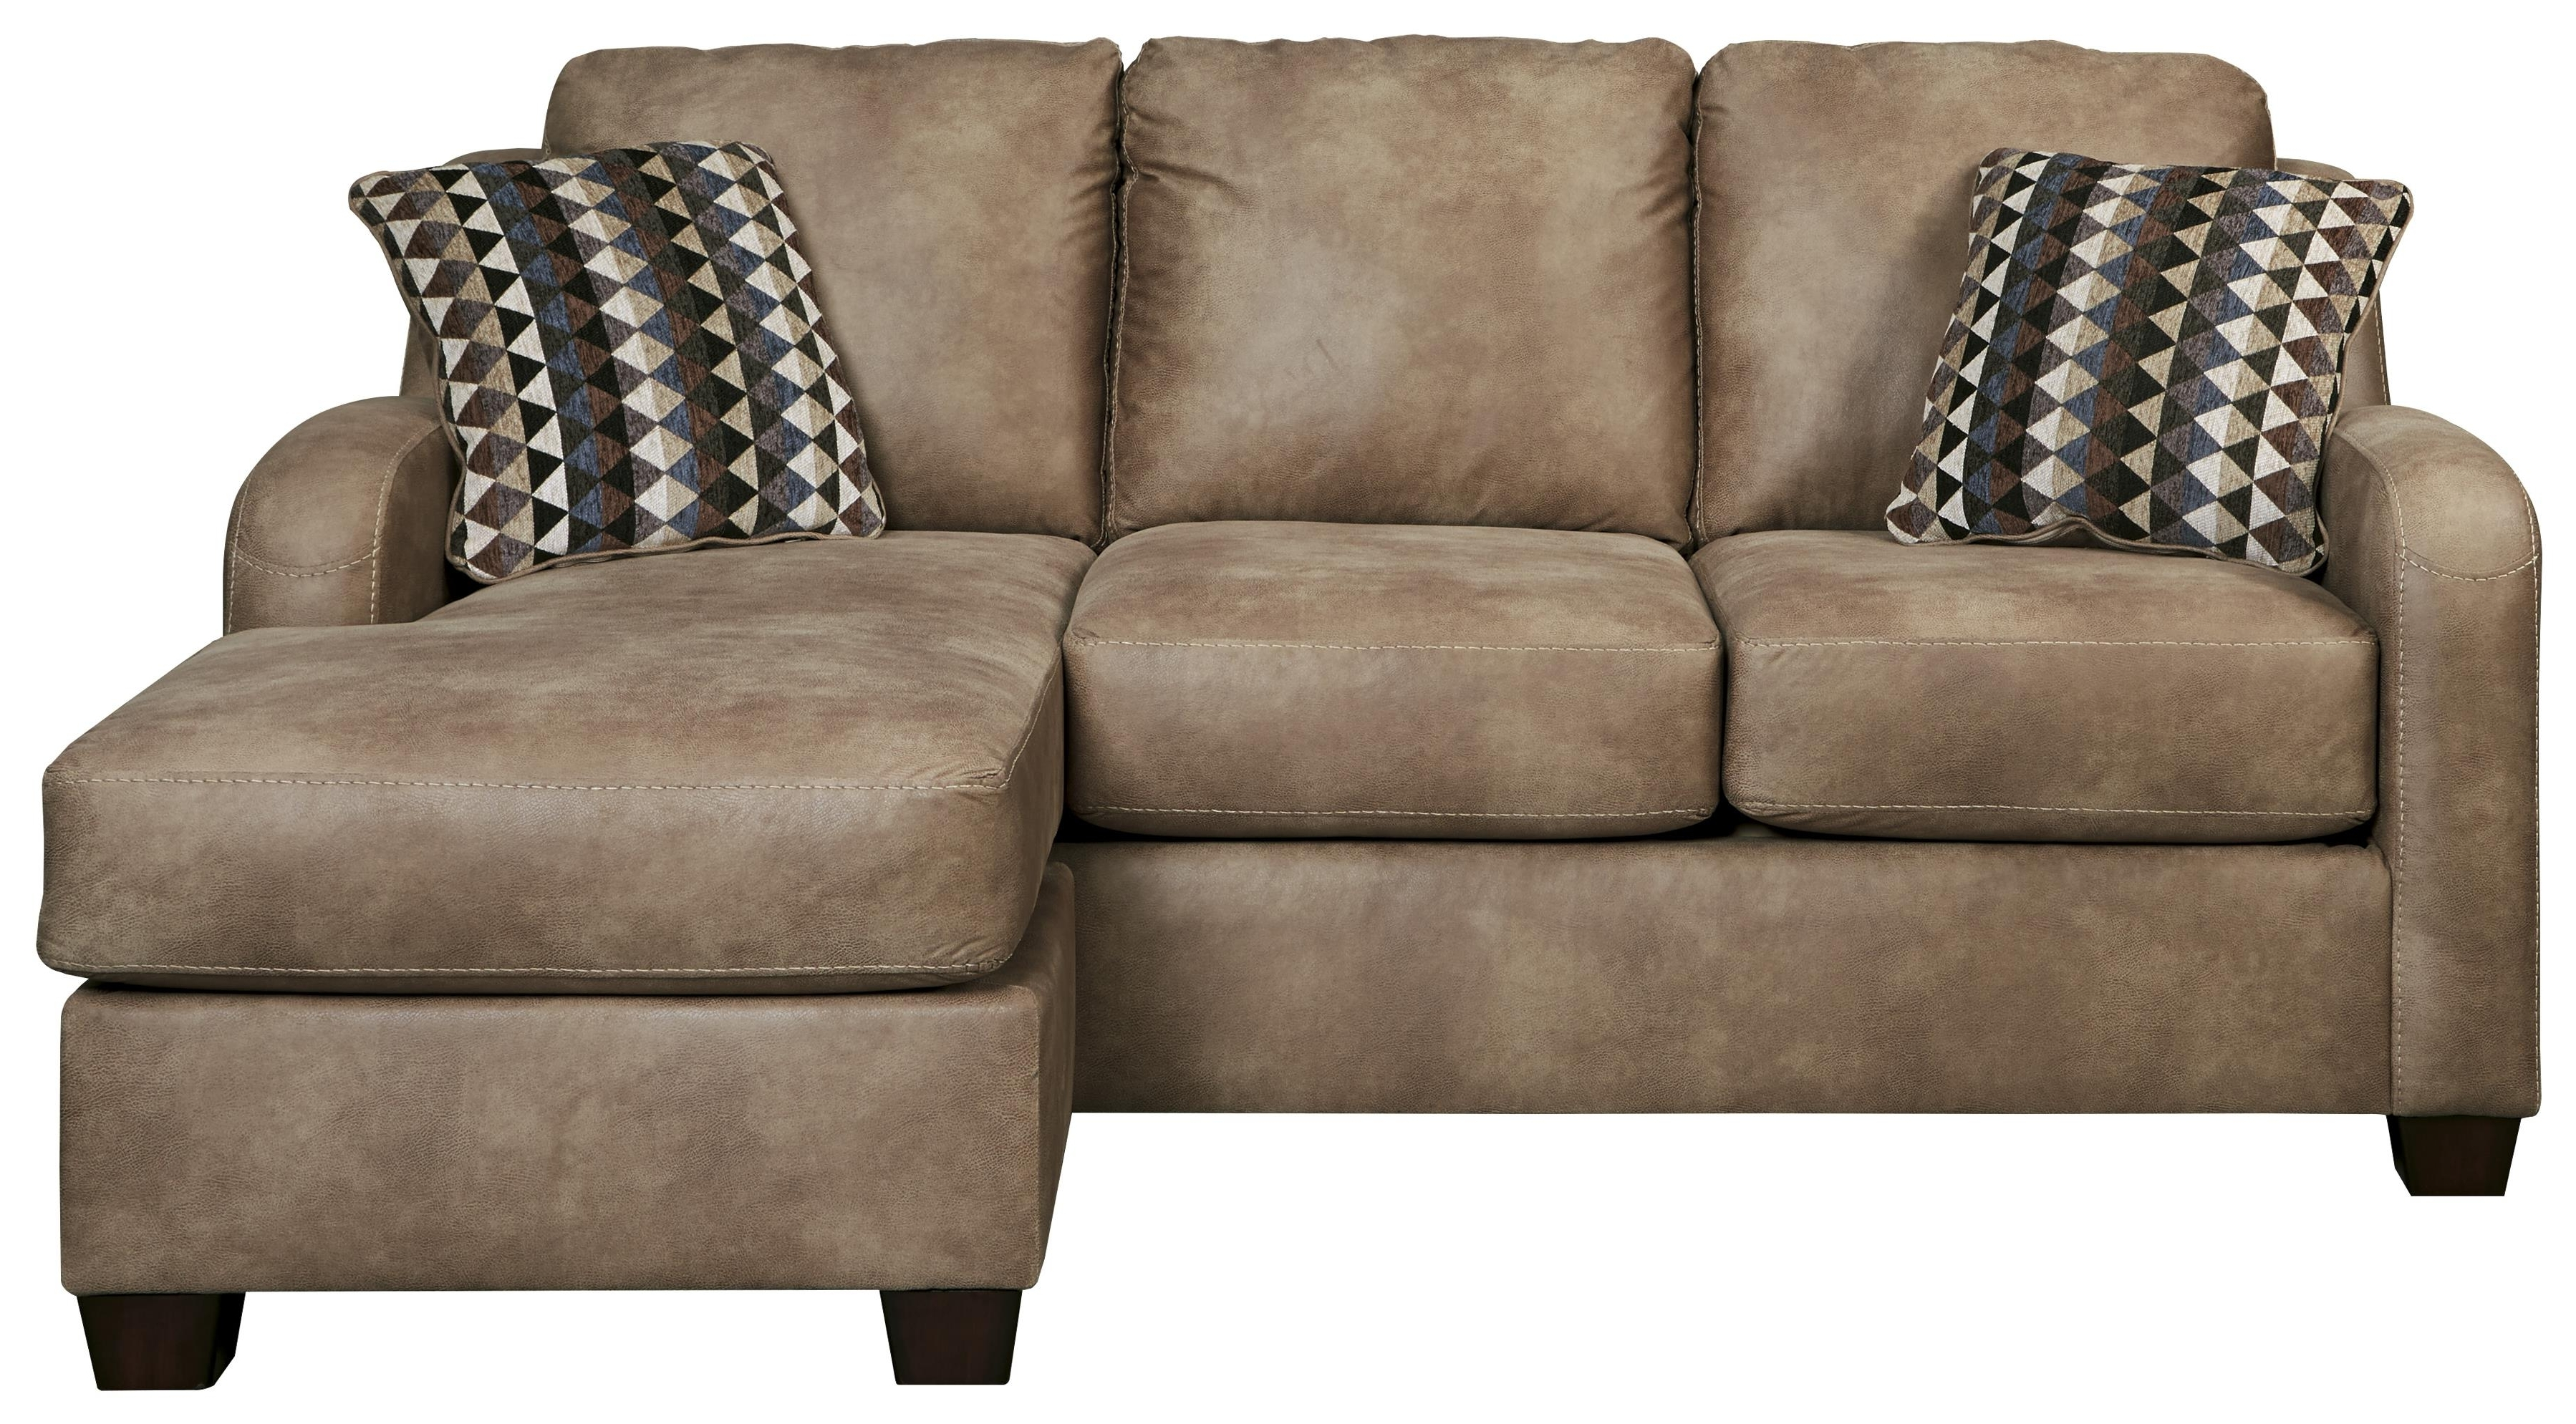 Contemporary Faux Leather Sofa Chaisebenchcraft (View 3 of 15)